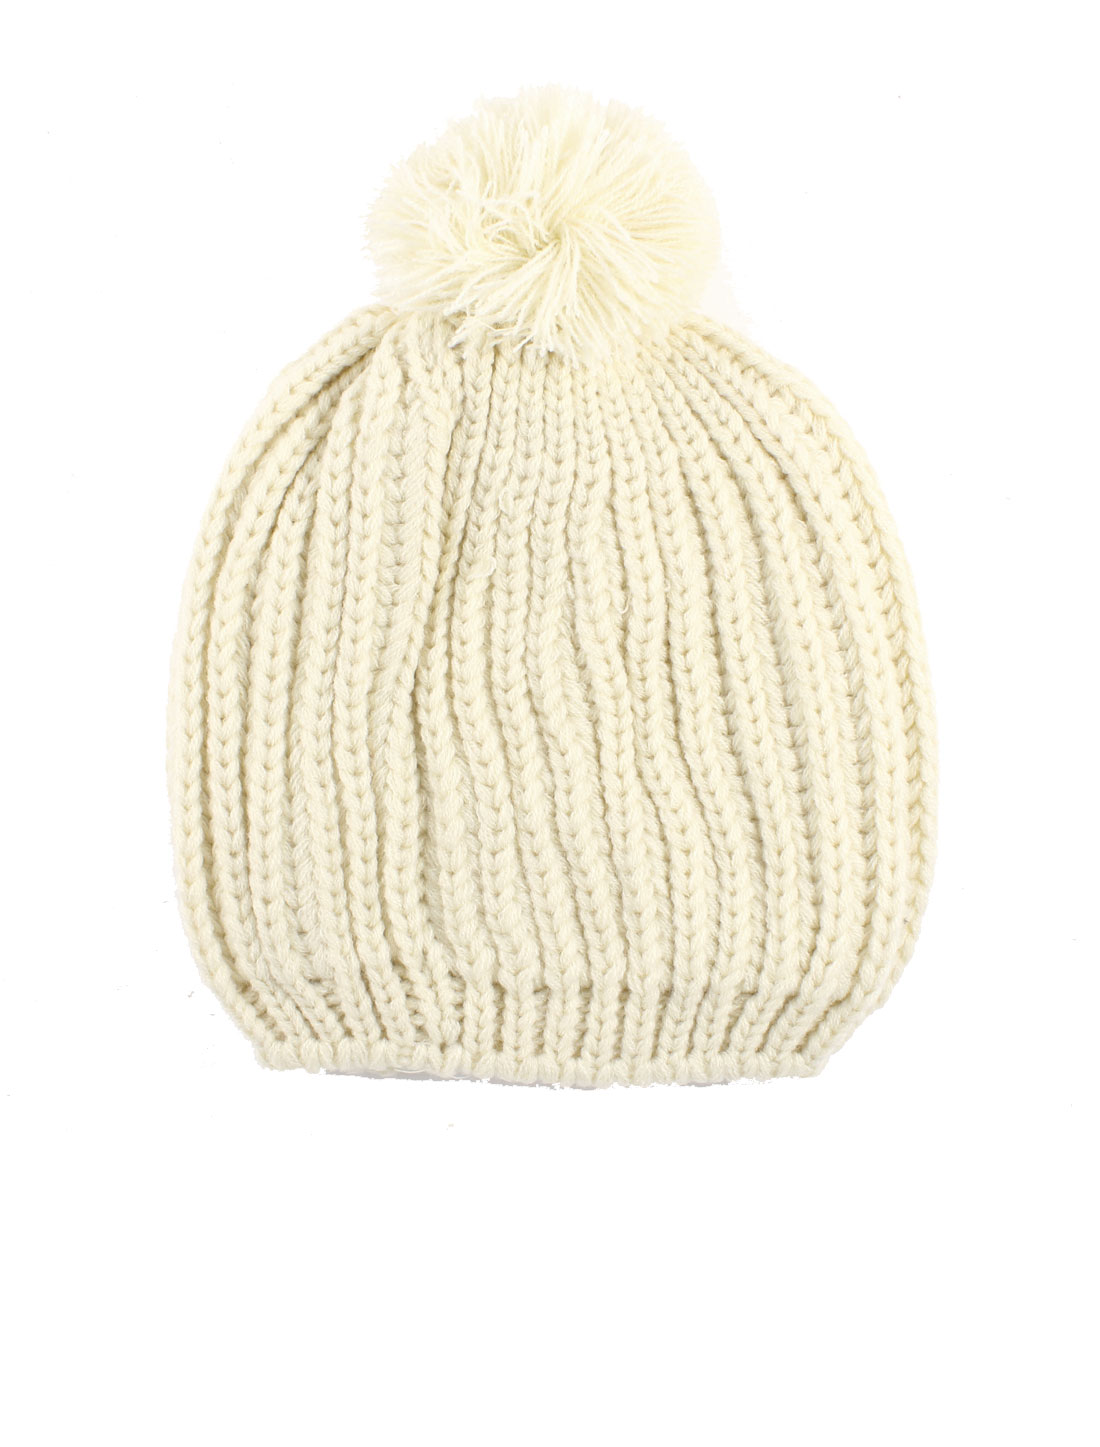 Ladies Beige Pom Pom Top Ribbed Knit Winter Warm Bobble Beanies Cap